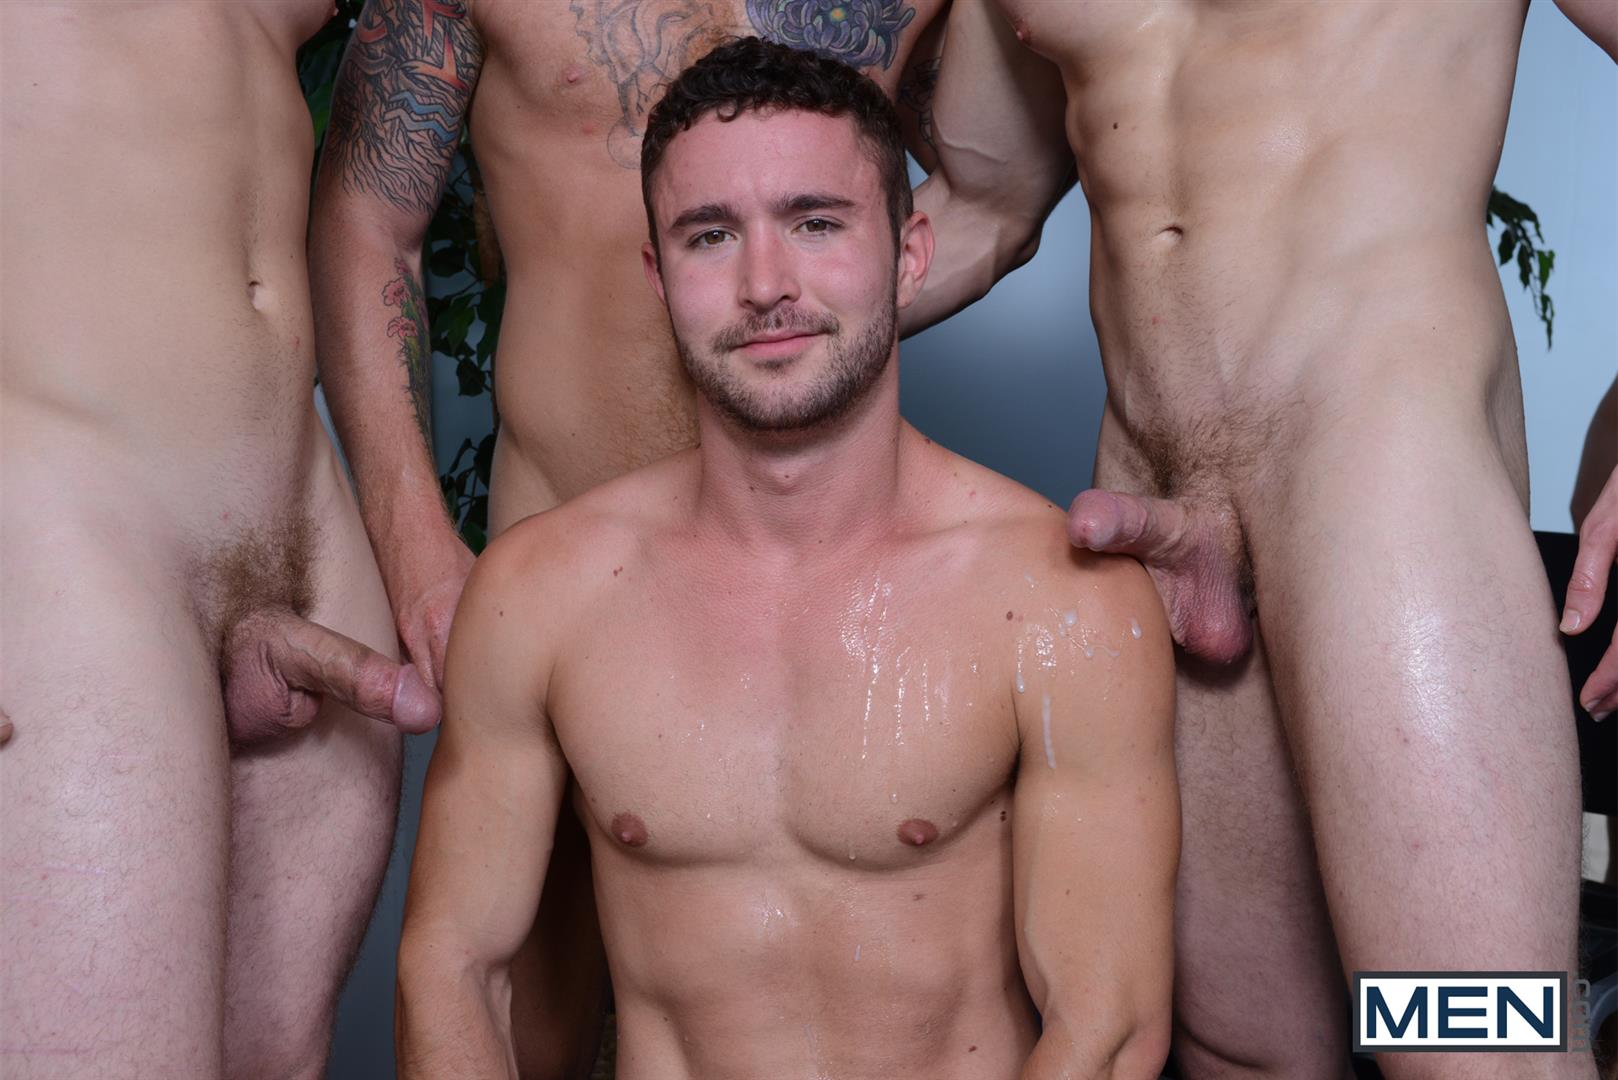 Amateur gay eat cum and lick ass phillip amp 4